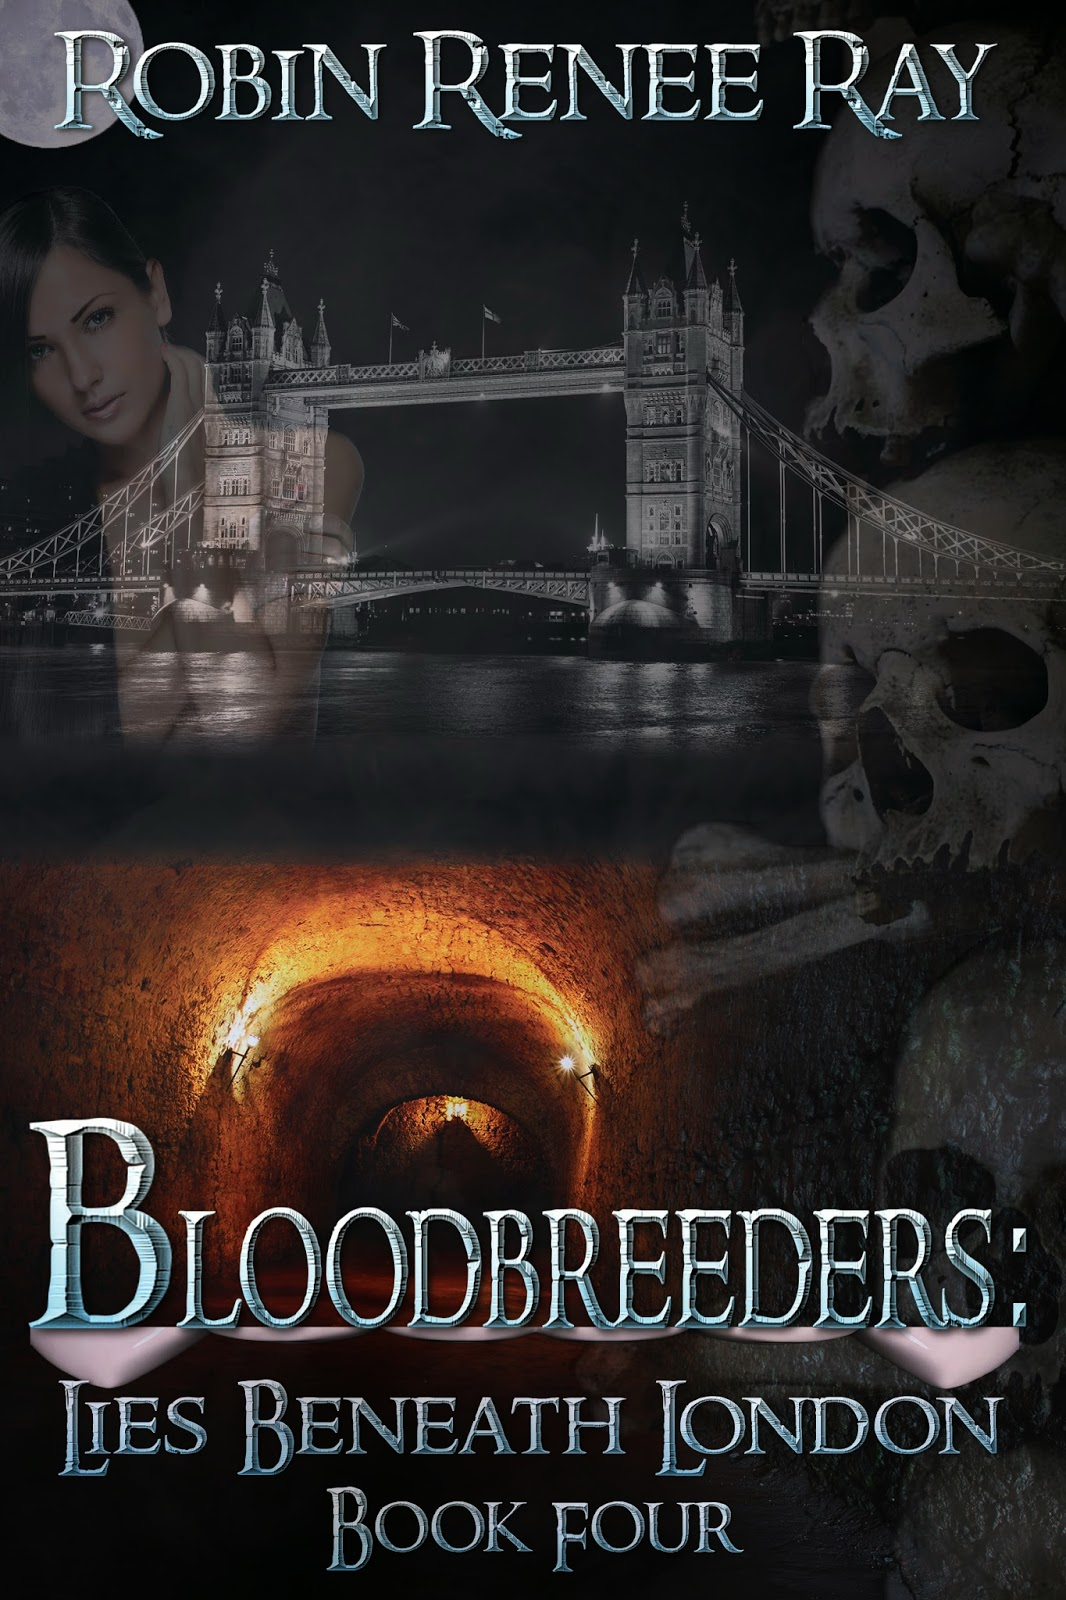 http://www.amazon.com/Bloodbreeders-Lies-Beneath-London-ebook/dp/B00K1NVG0Y/ref=sr_1_4?s=digital-text&ie=UTF8&qid=1399474541&sr=1-4&keywords=bloodbreeders